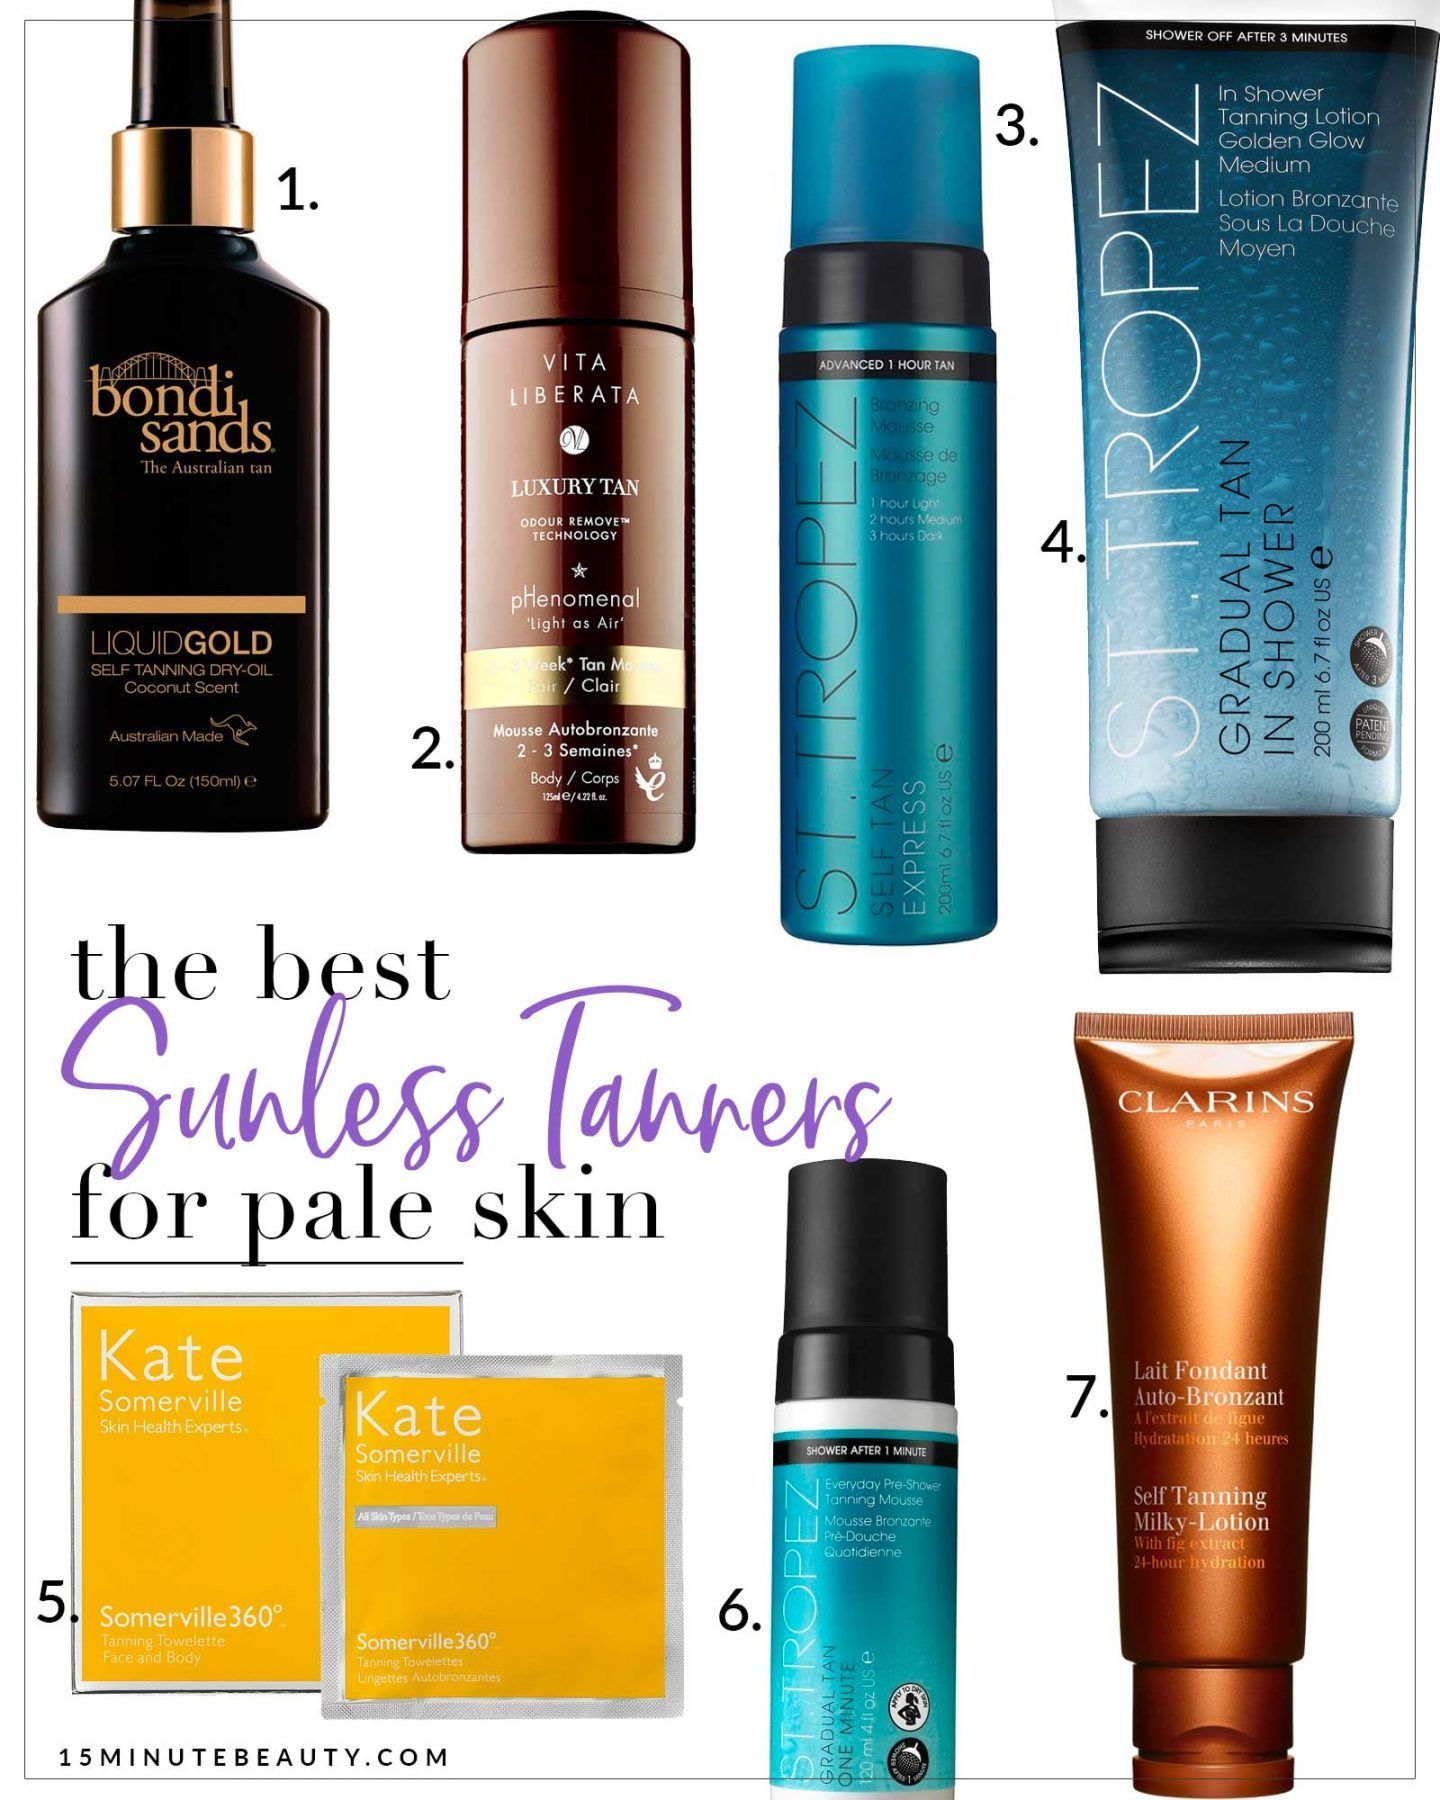 what is the best self tanning lotion for fair skin